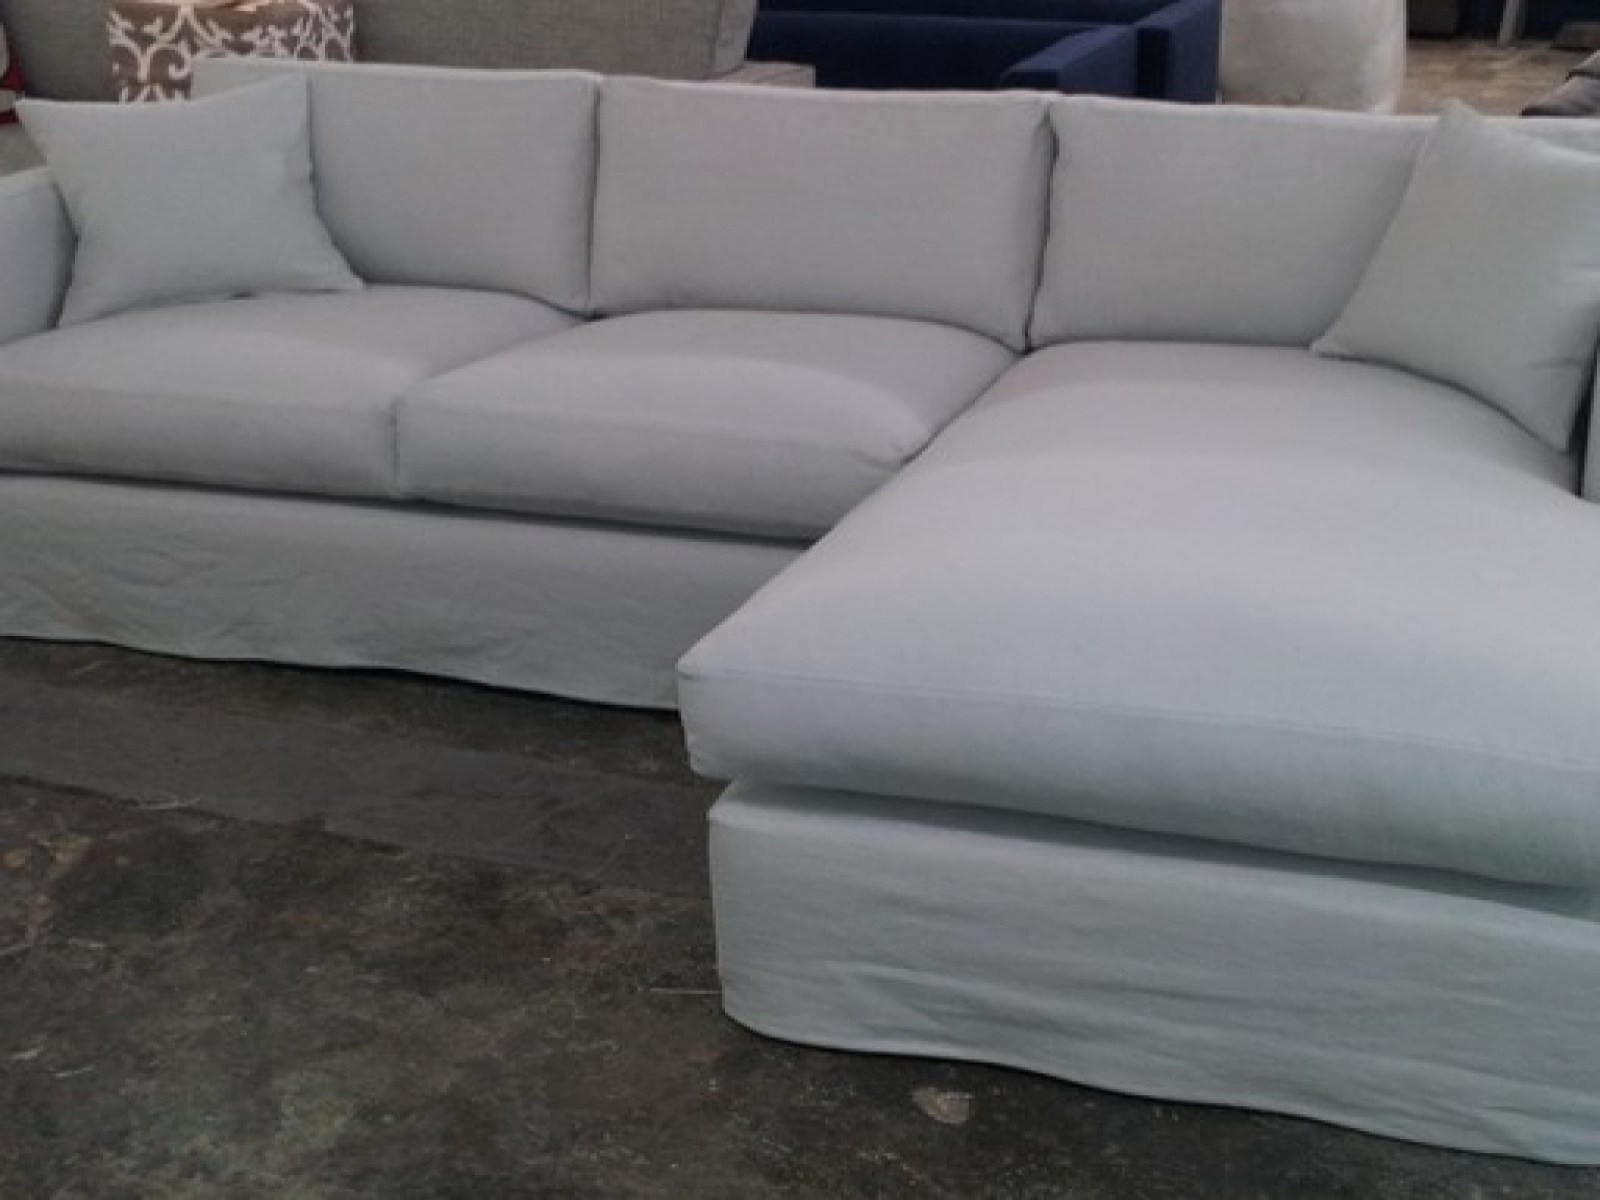 ▻ Sofa : 34 Recliner Sofa Covers Couch Slipcovers Target Slipcovers For Target Sectional Sofas (View 1 of 10)